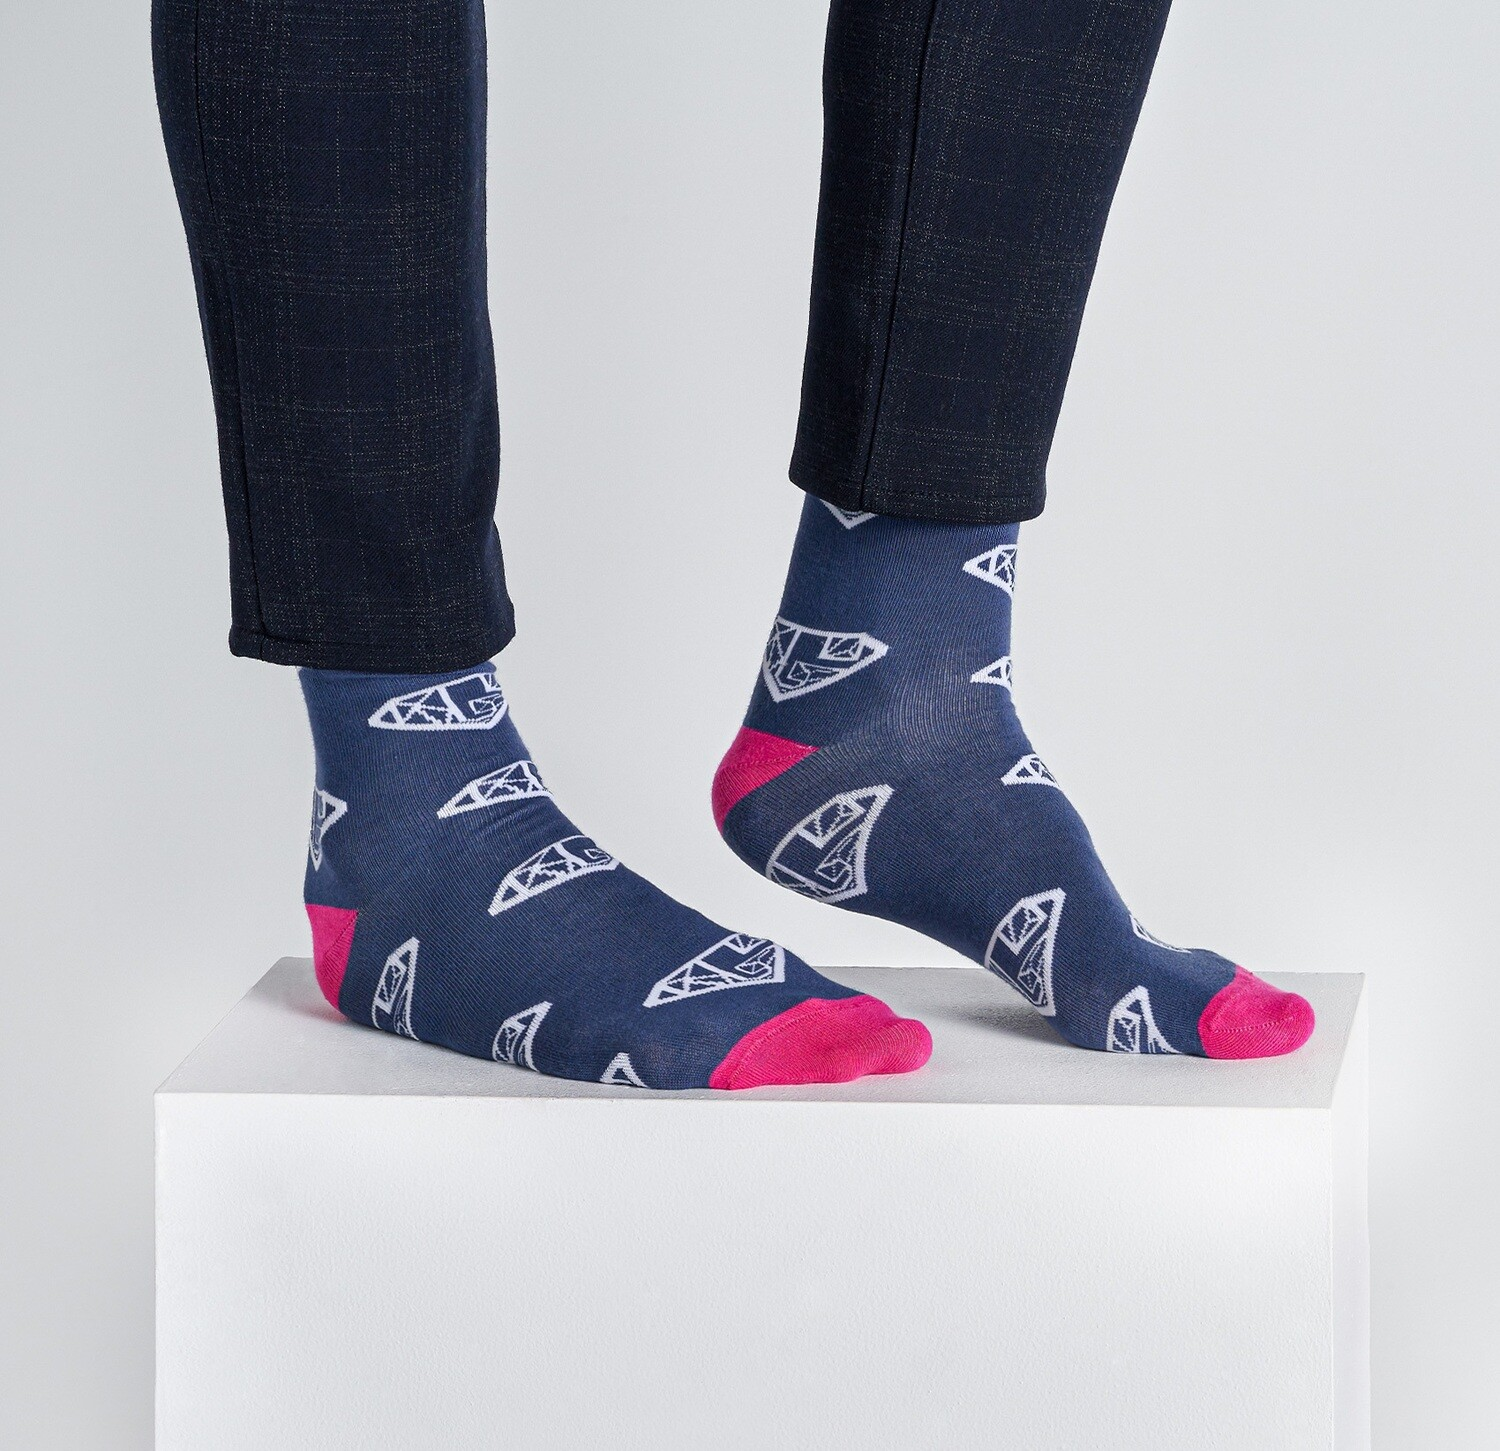 Sock Navy Blue